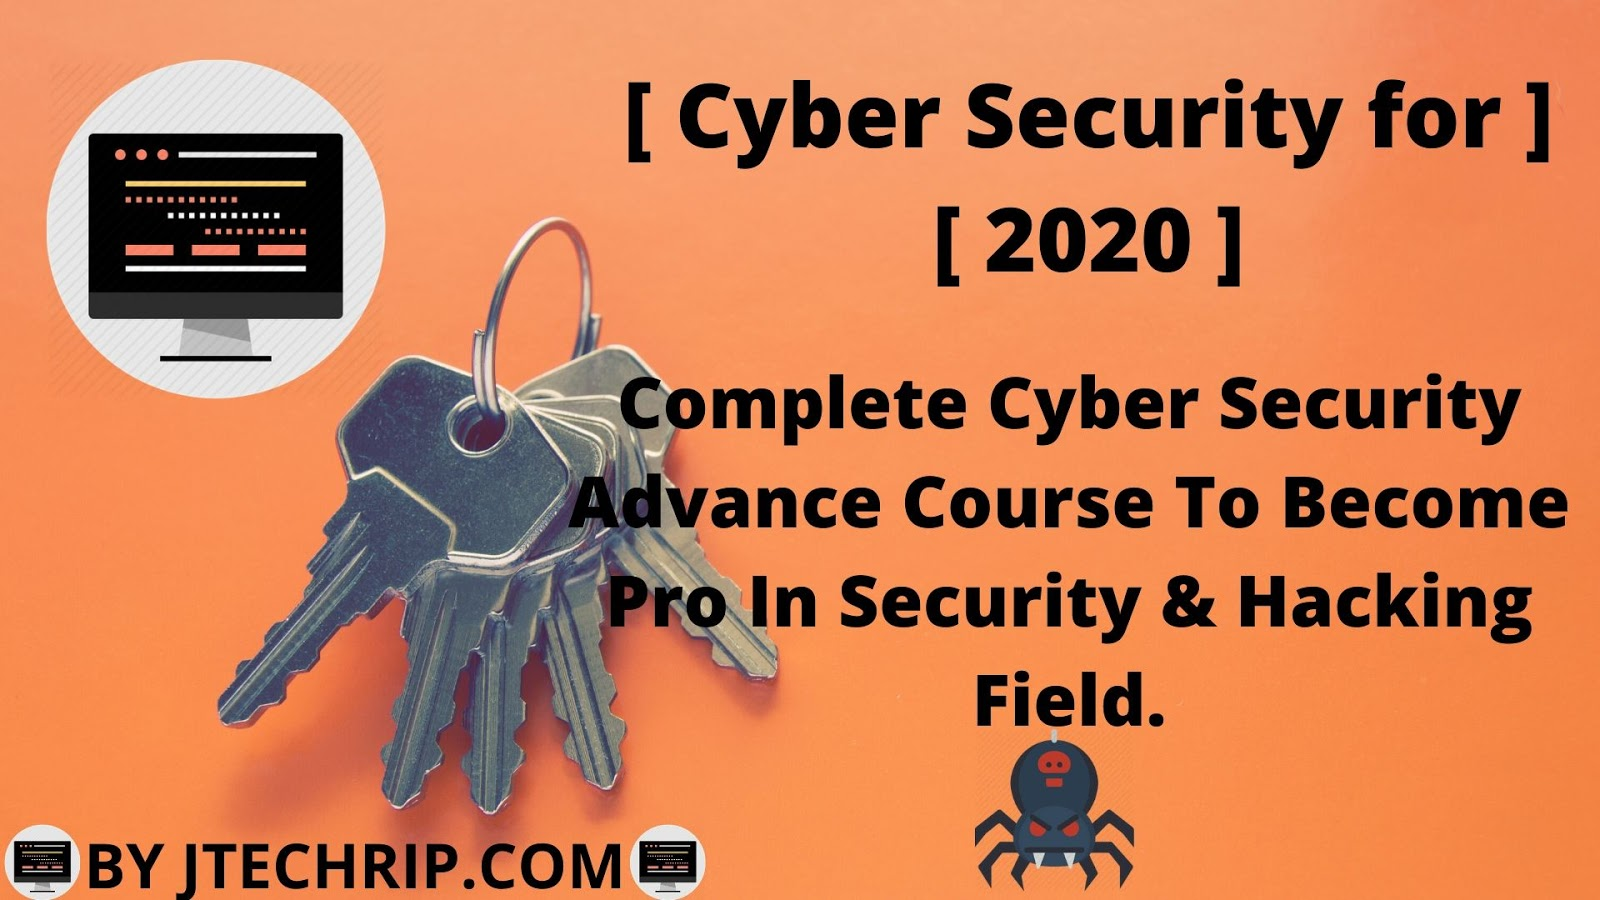 Complete Cyber Security Advance Course For 2020.